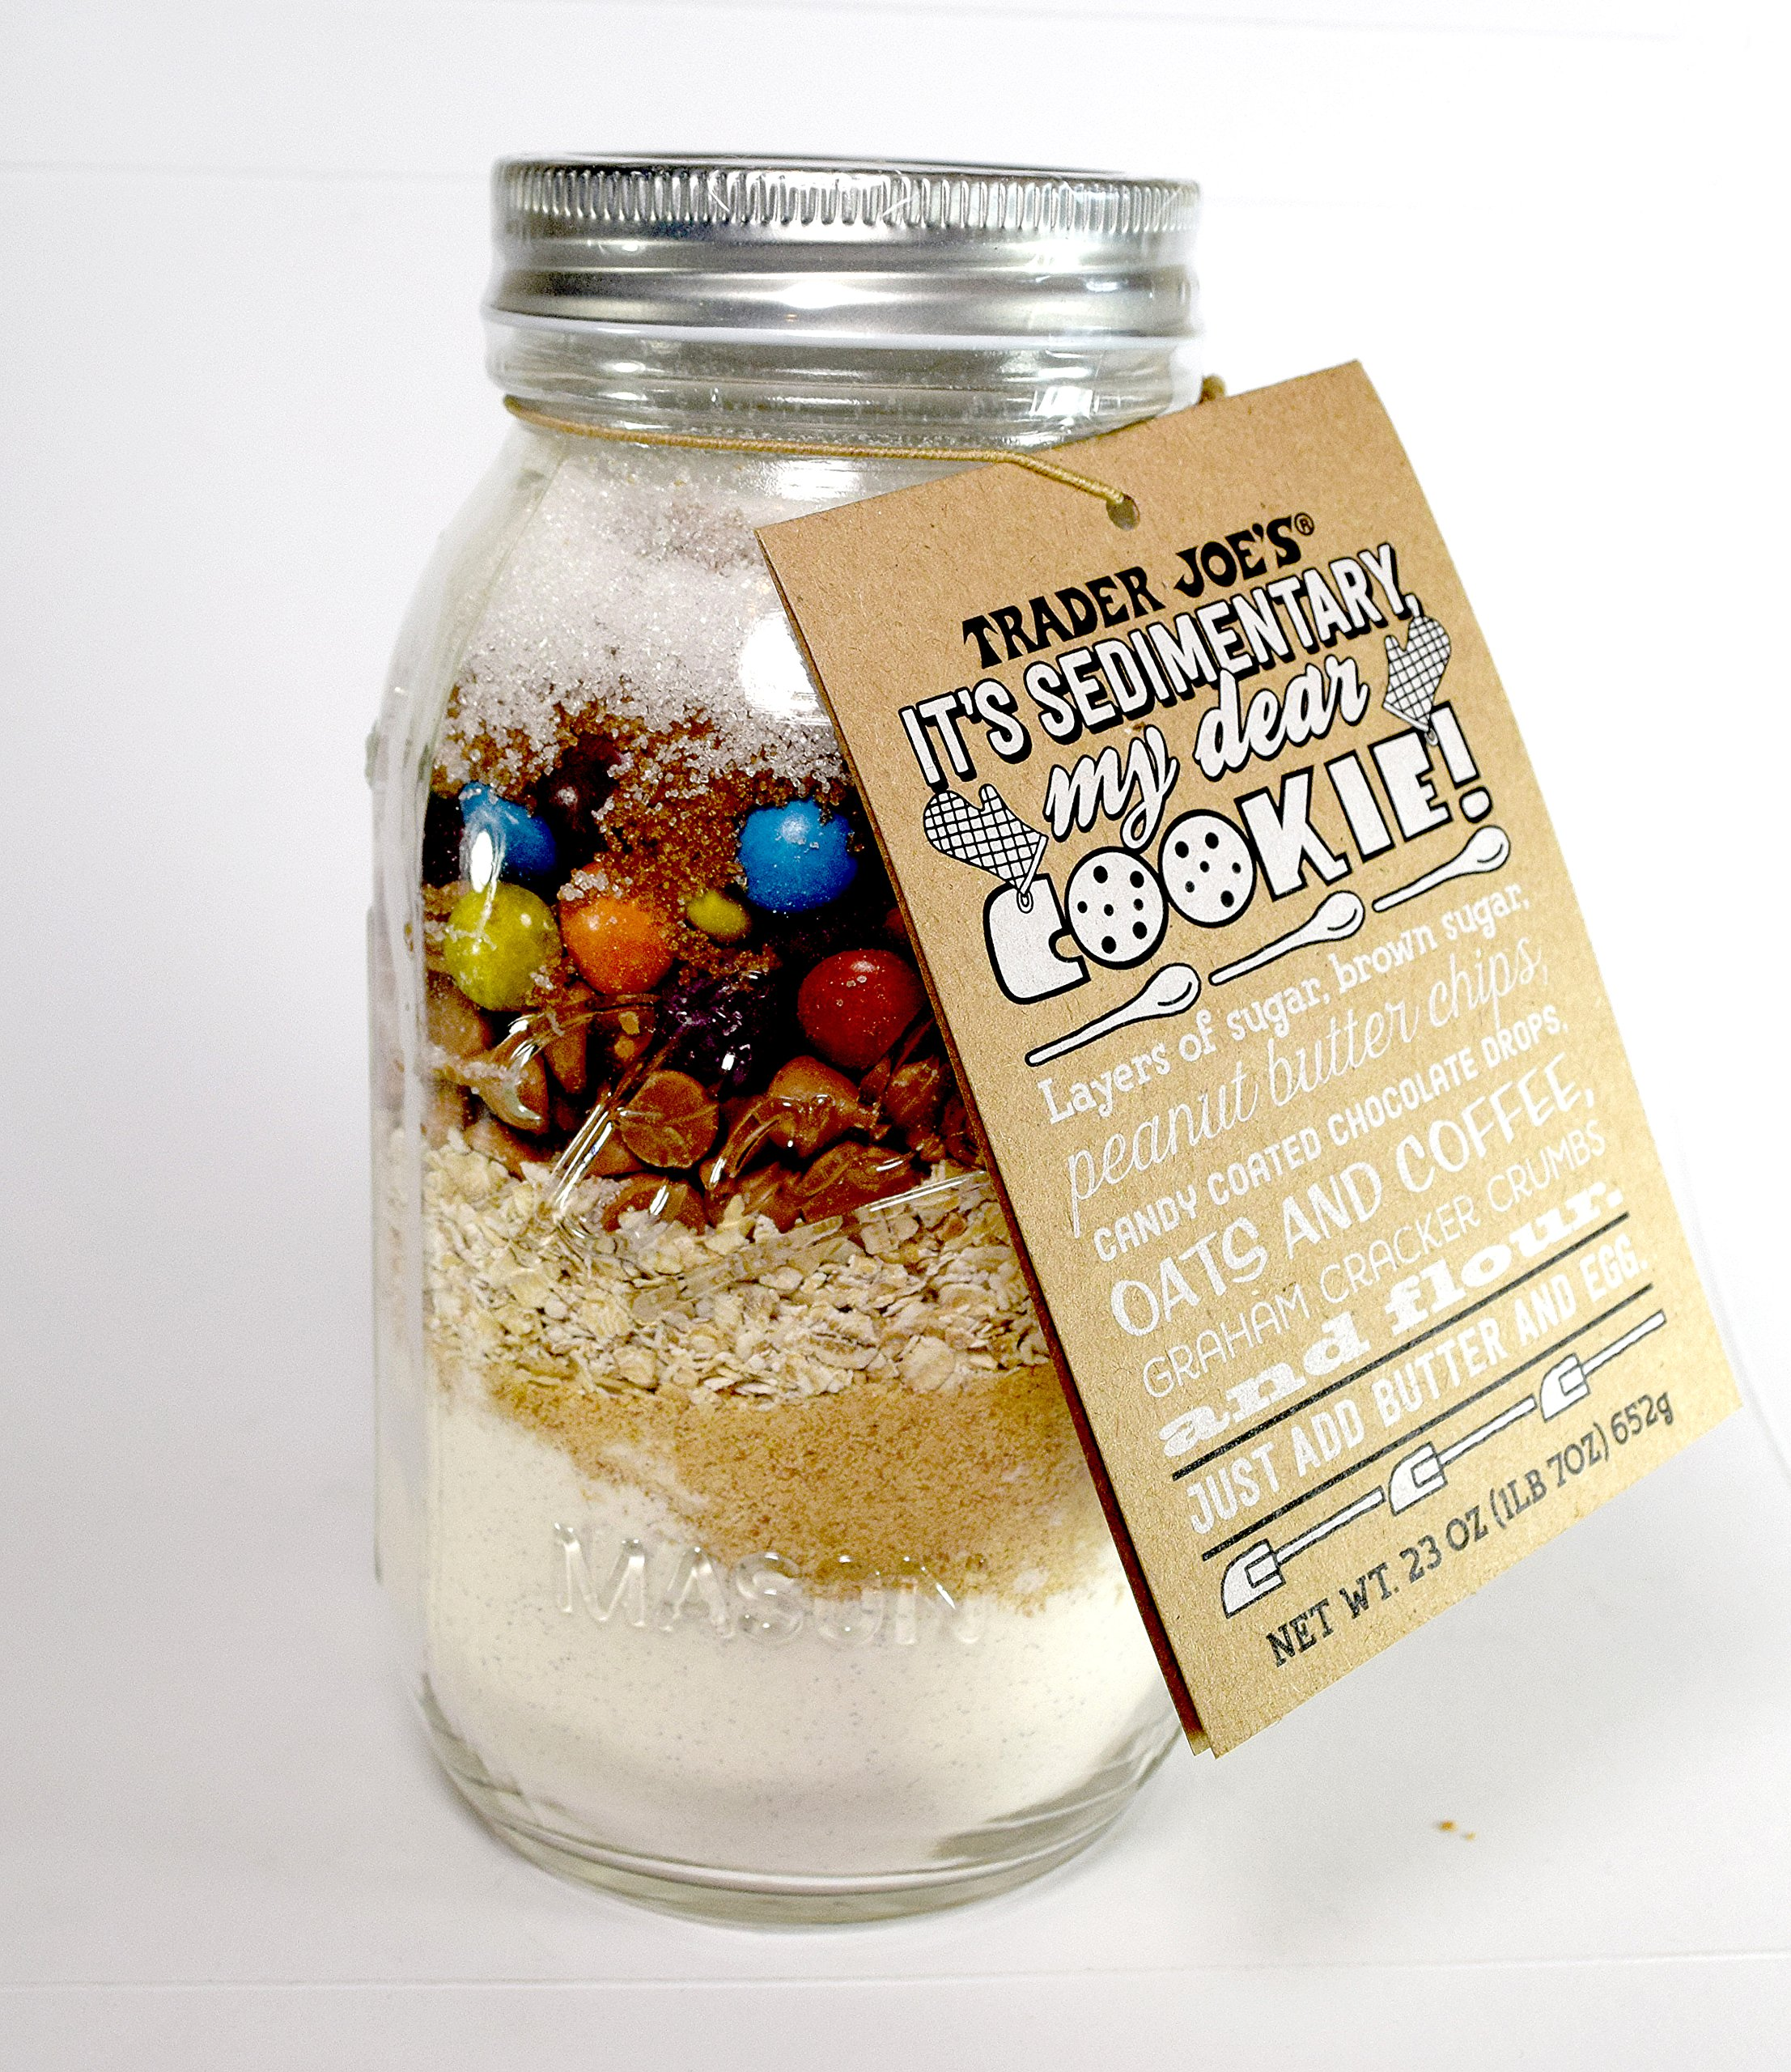 Trader Joe's It's Sedimentary My Dear Cookie! Cookie Mix in Mason Jar 23 Oz.